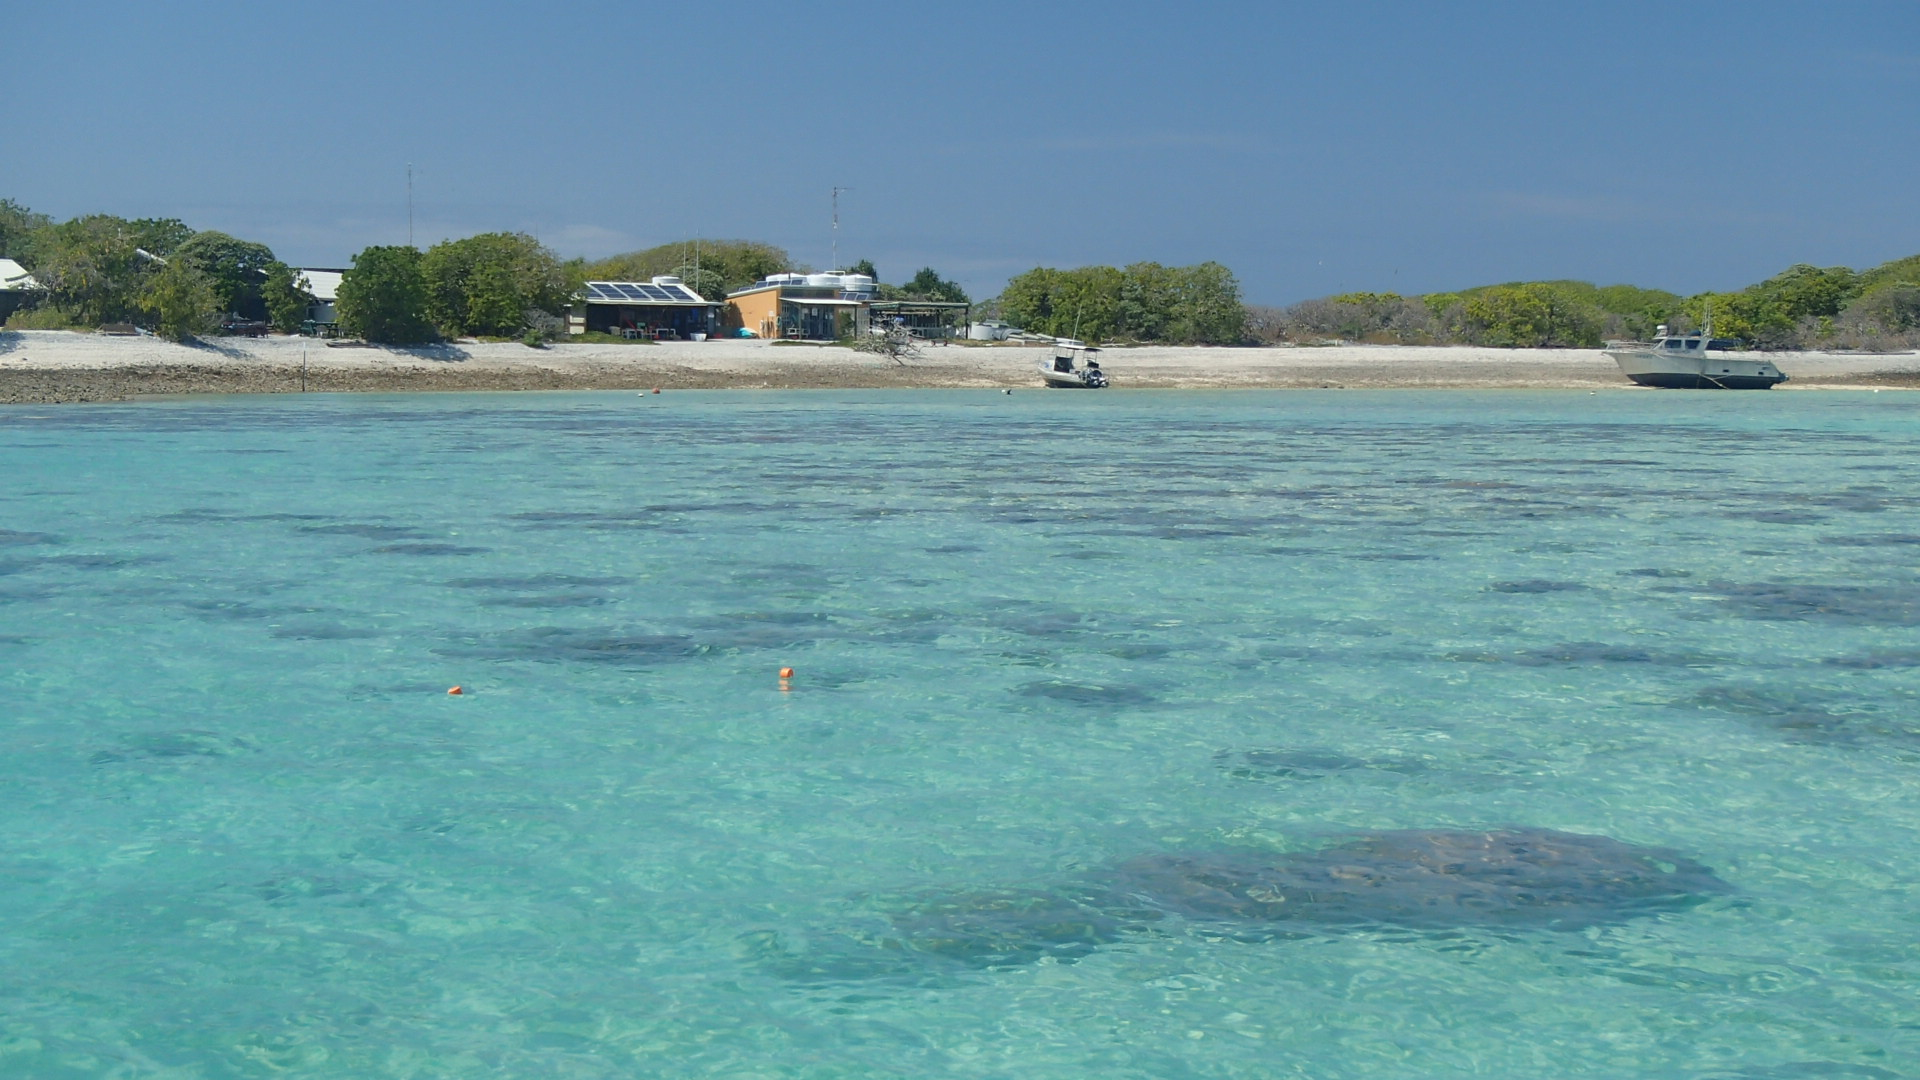 One Tree Island Research Station runs on solar power and rain water. It's 100 kilometres from the coast and is an undisturbed example of a coral reef ecosystem.